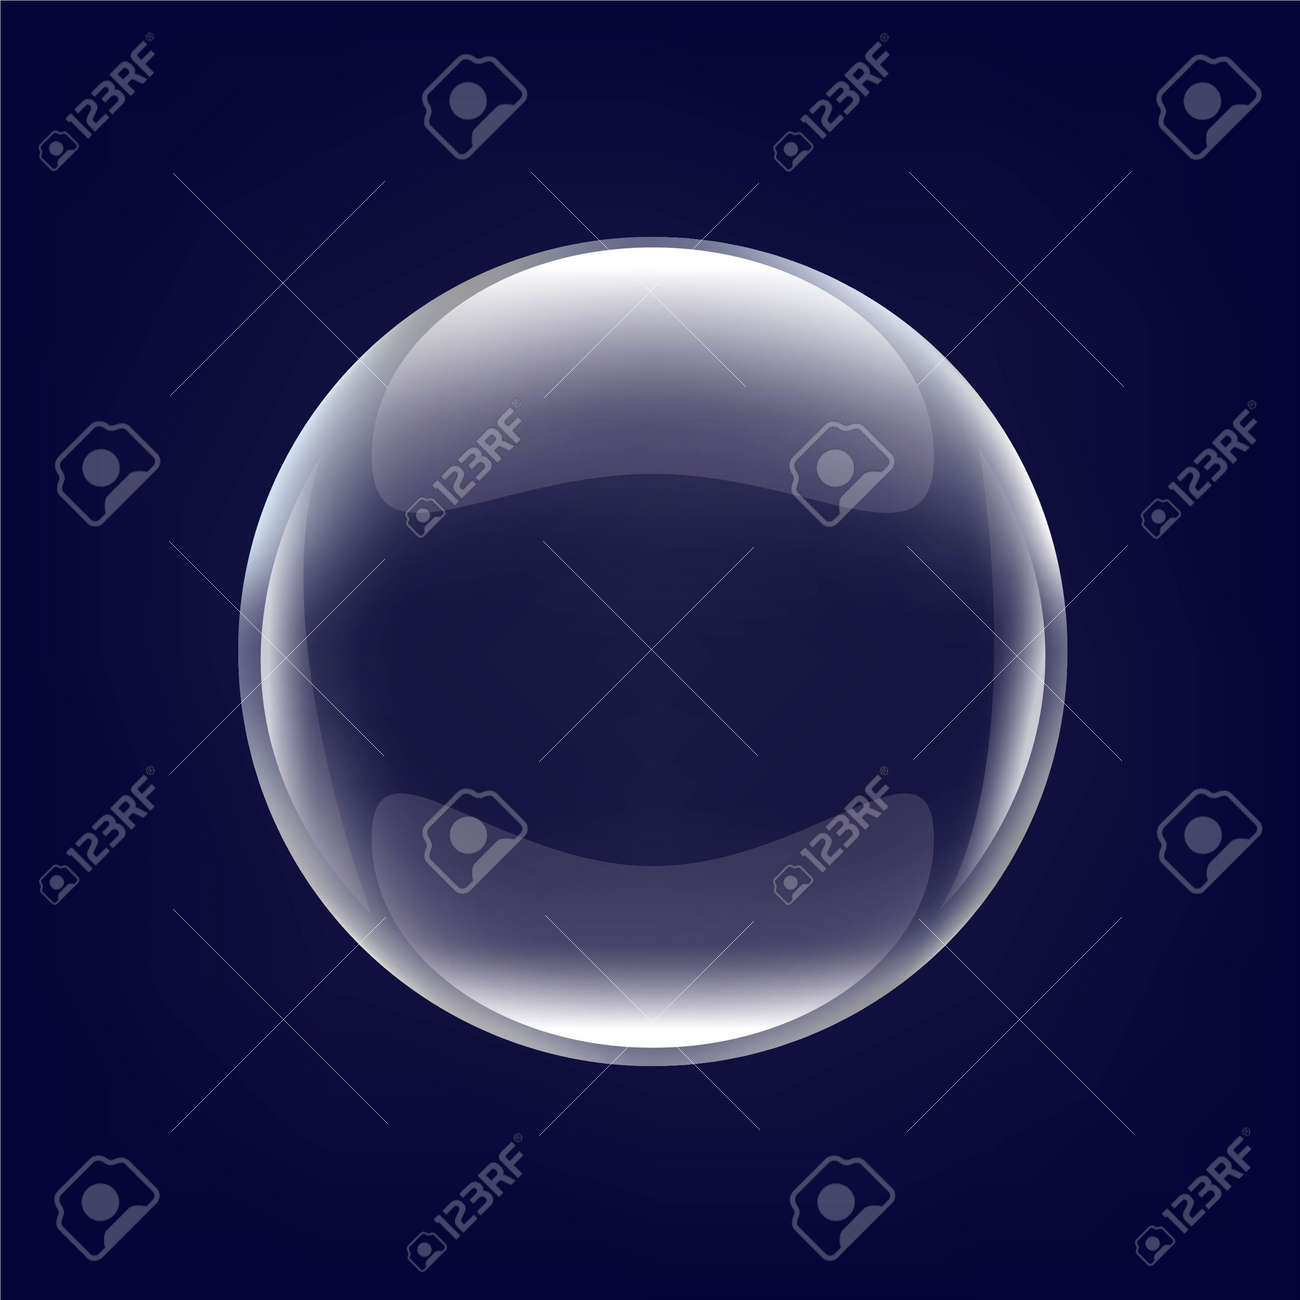 Glass Ball With Blue Background, With Gradient Mesh, Vector Illustration - 25994859